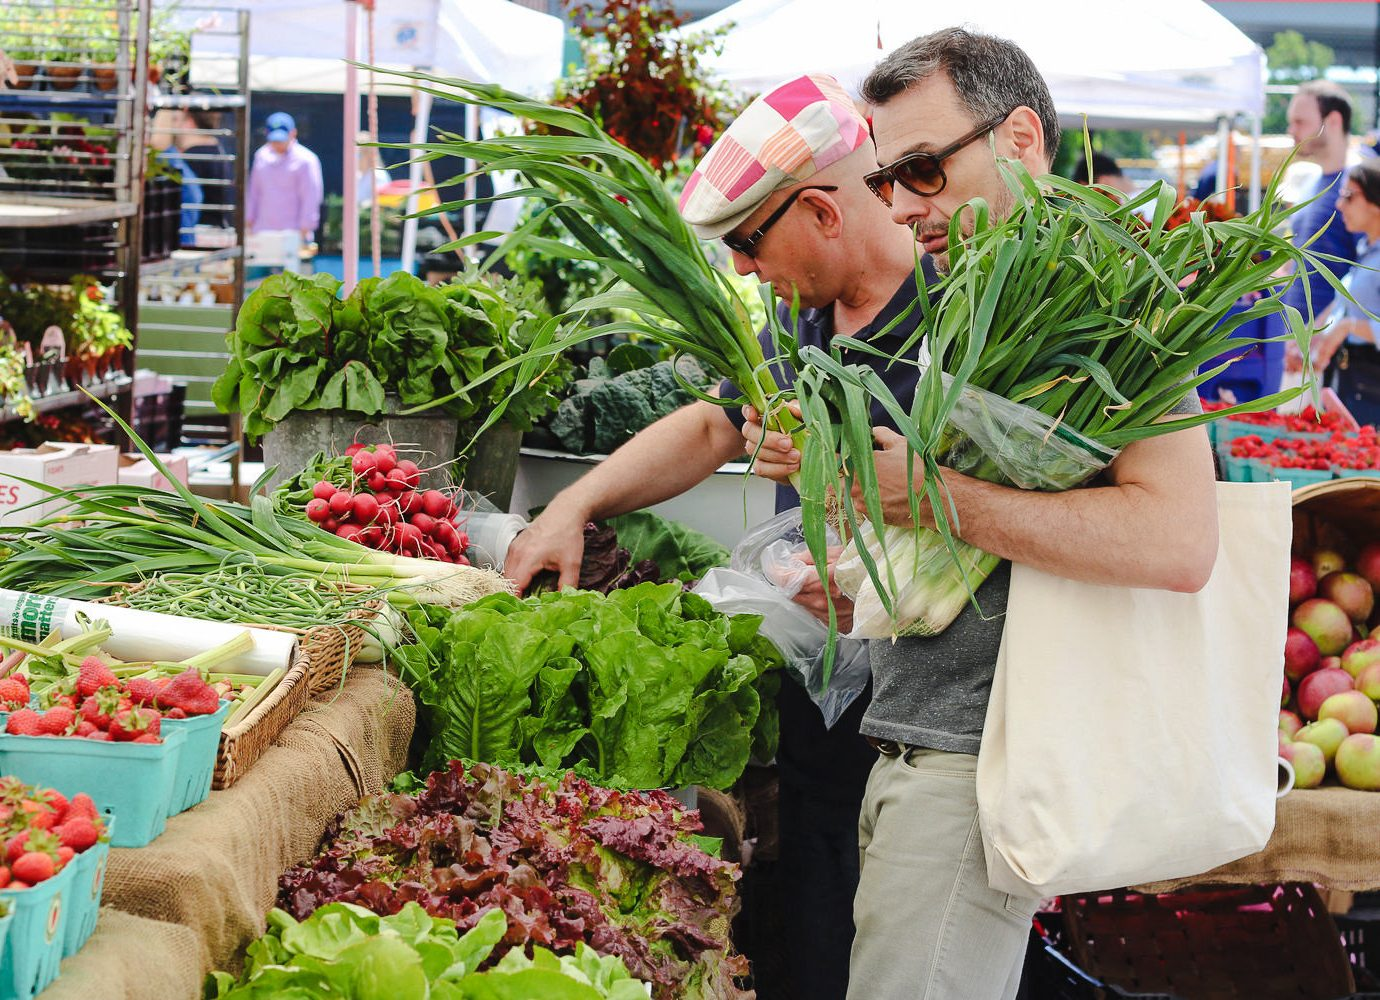 Trip Ideas natural foods produce local food food marketplace market outdoor fruit vegetable public space person vendor greengrocer whole food floristry City plant leaf vegetable selling fresh sale variety